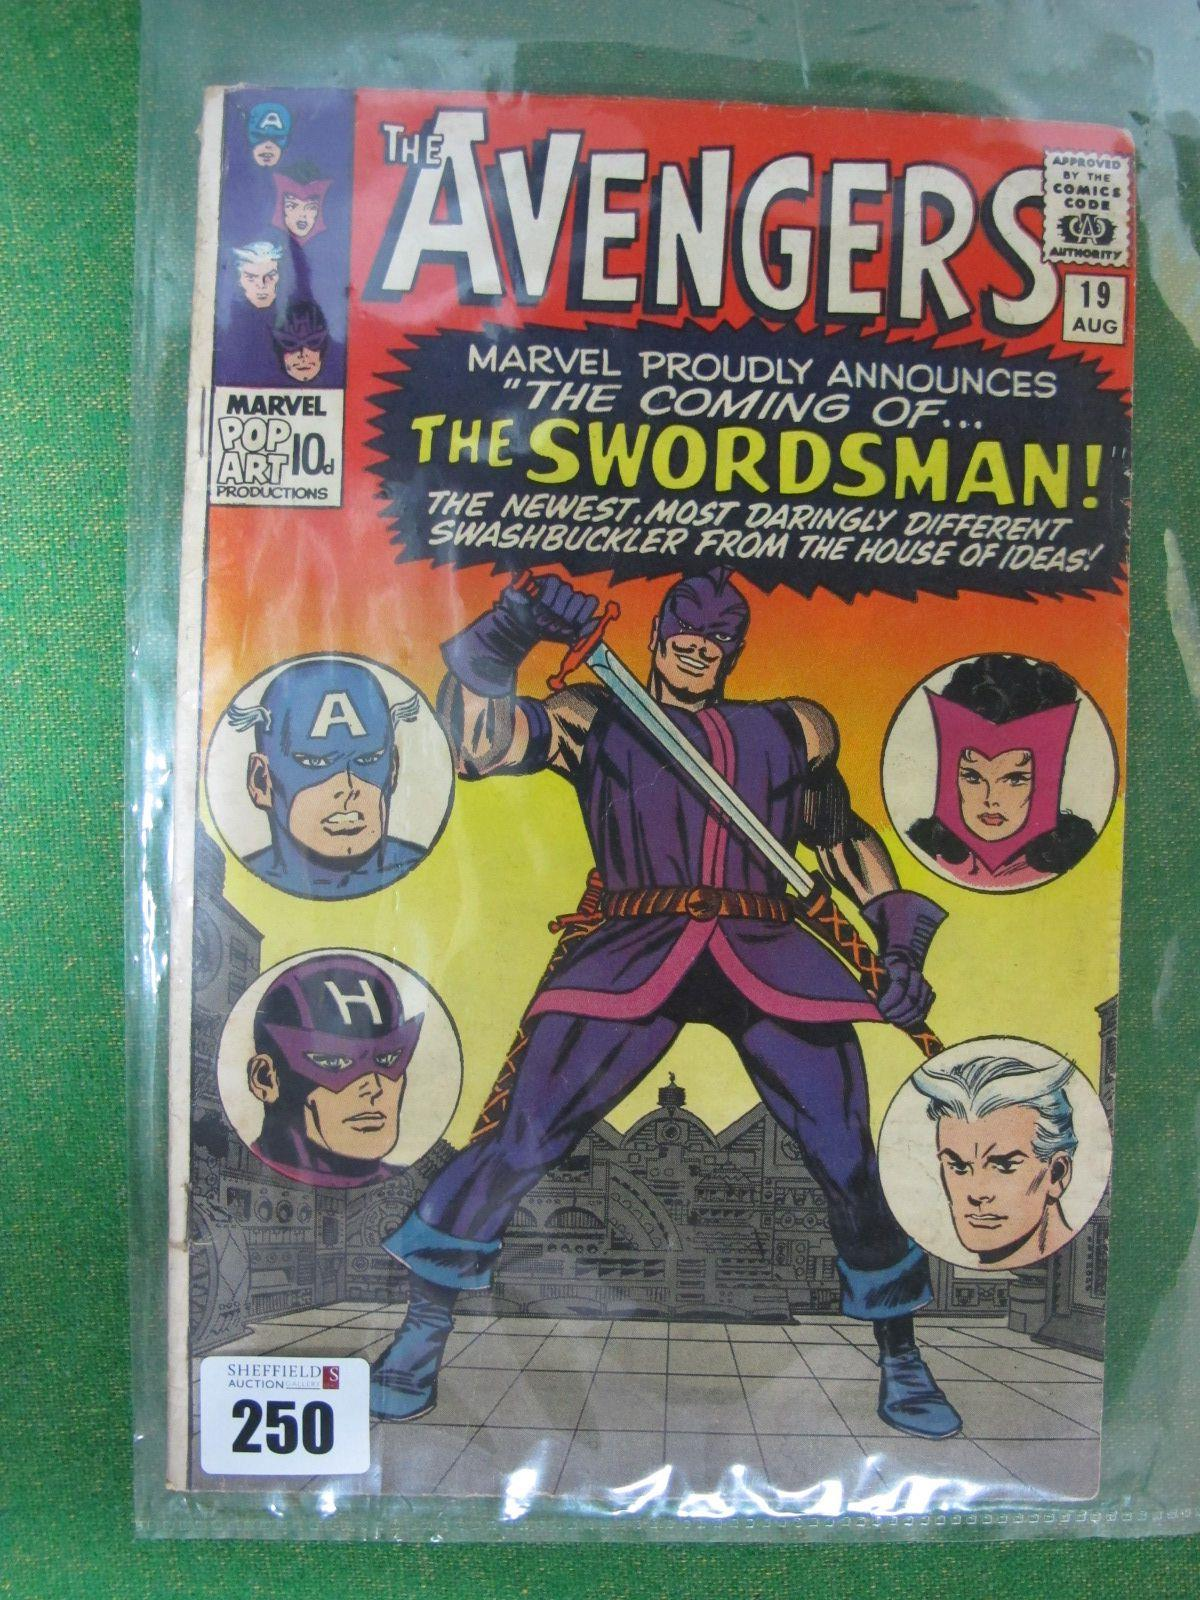 The Avengers #19/No.19, 9d, in used well read condition,